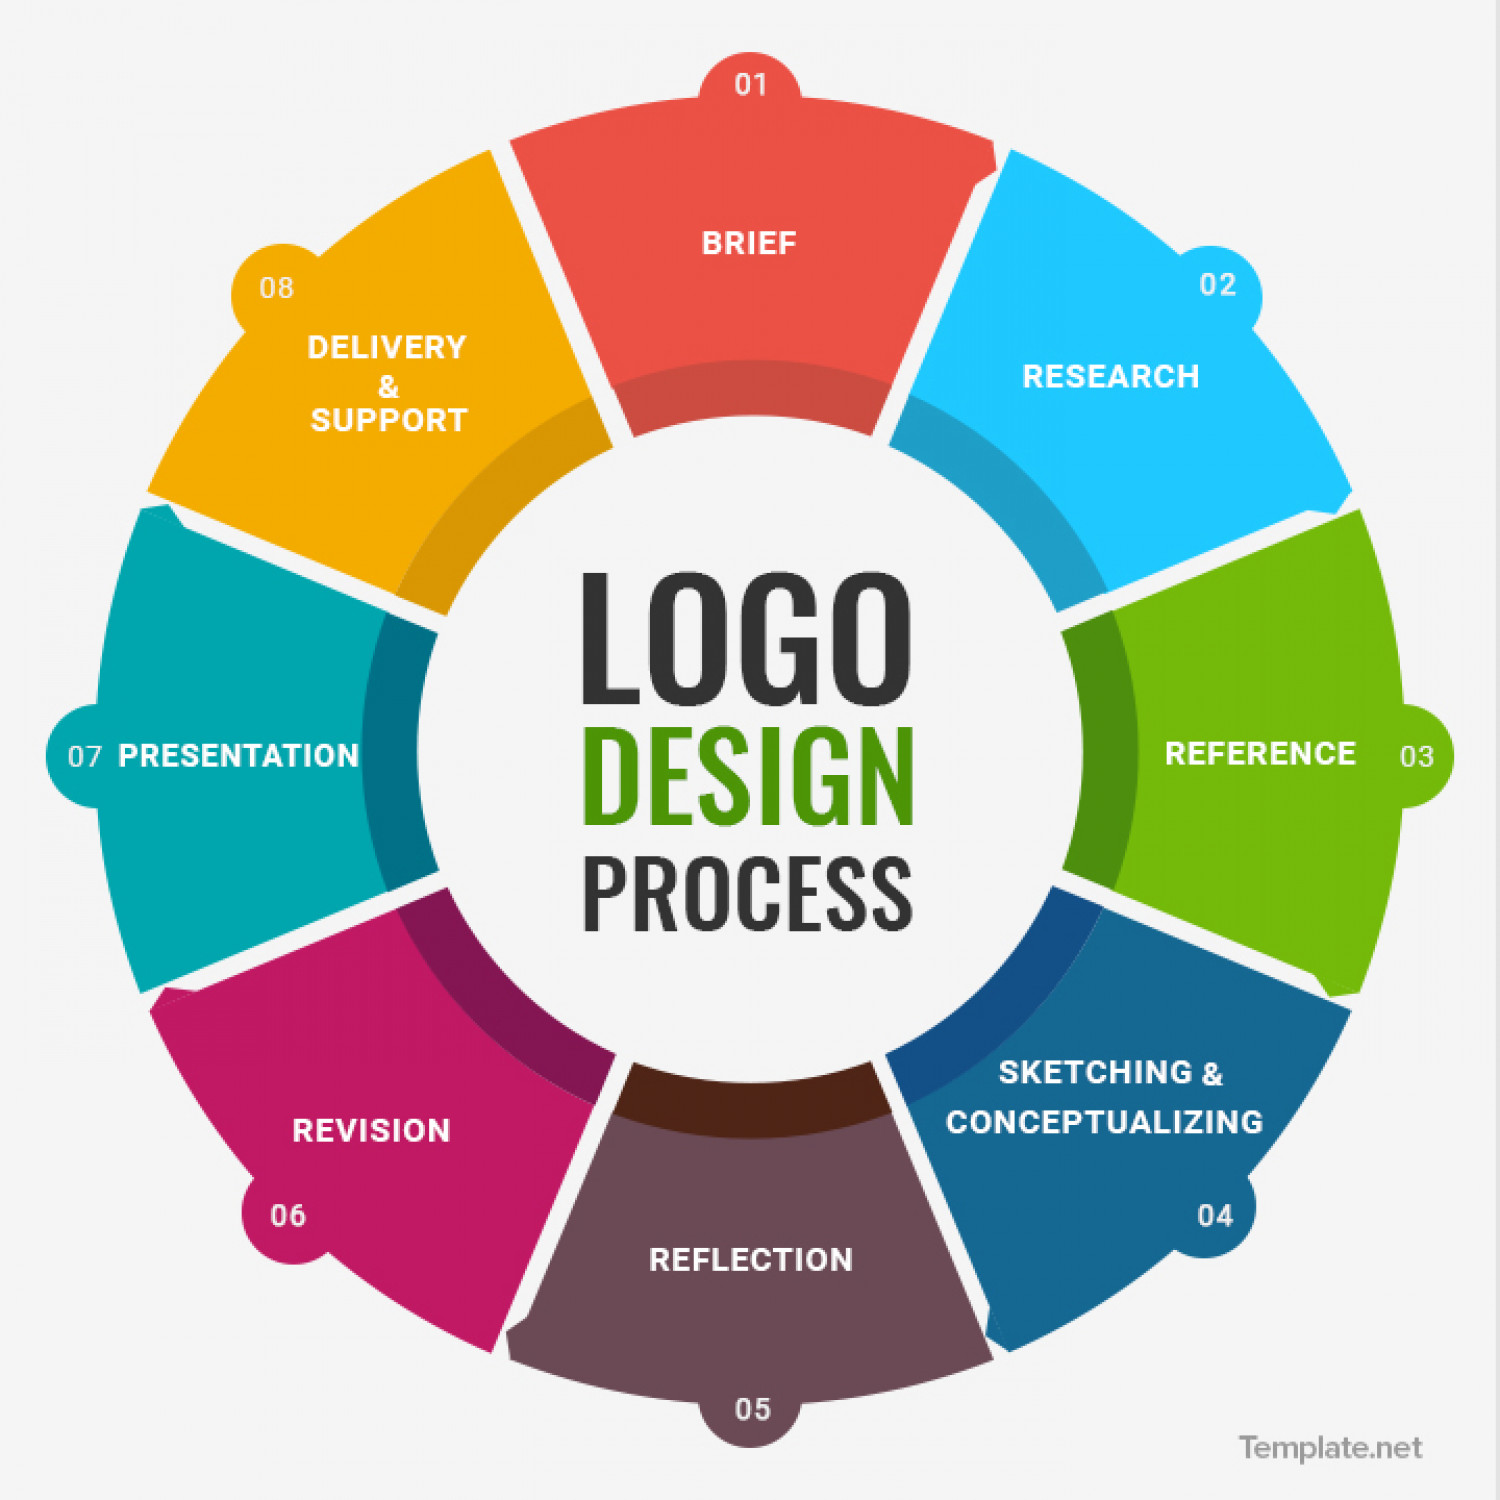 Logo Design Process Infographic on Behance